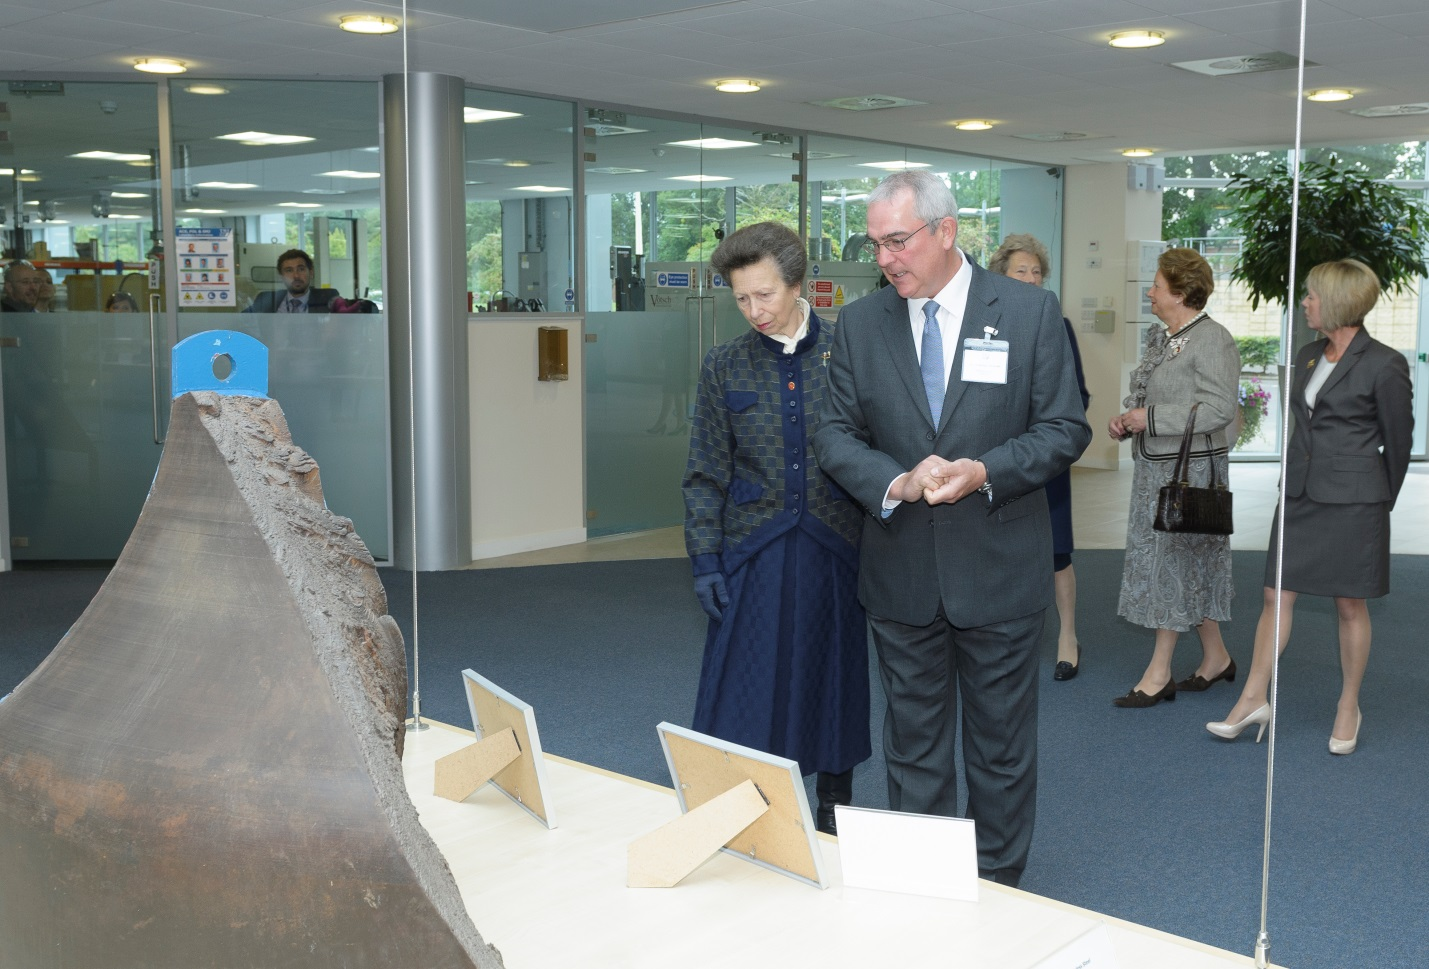 The piece of the brittle fracture preserved at TWI, being shown to Princess Anne in 2015